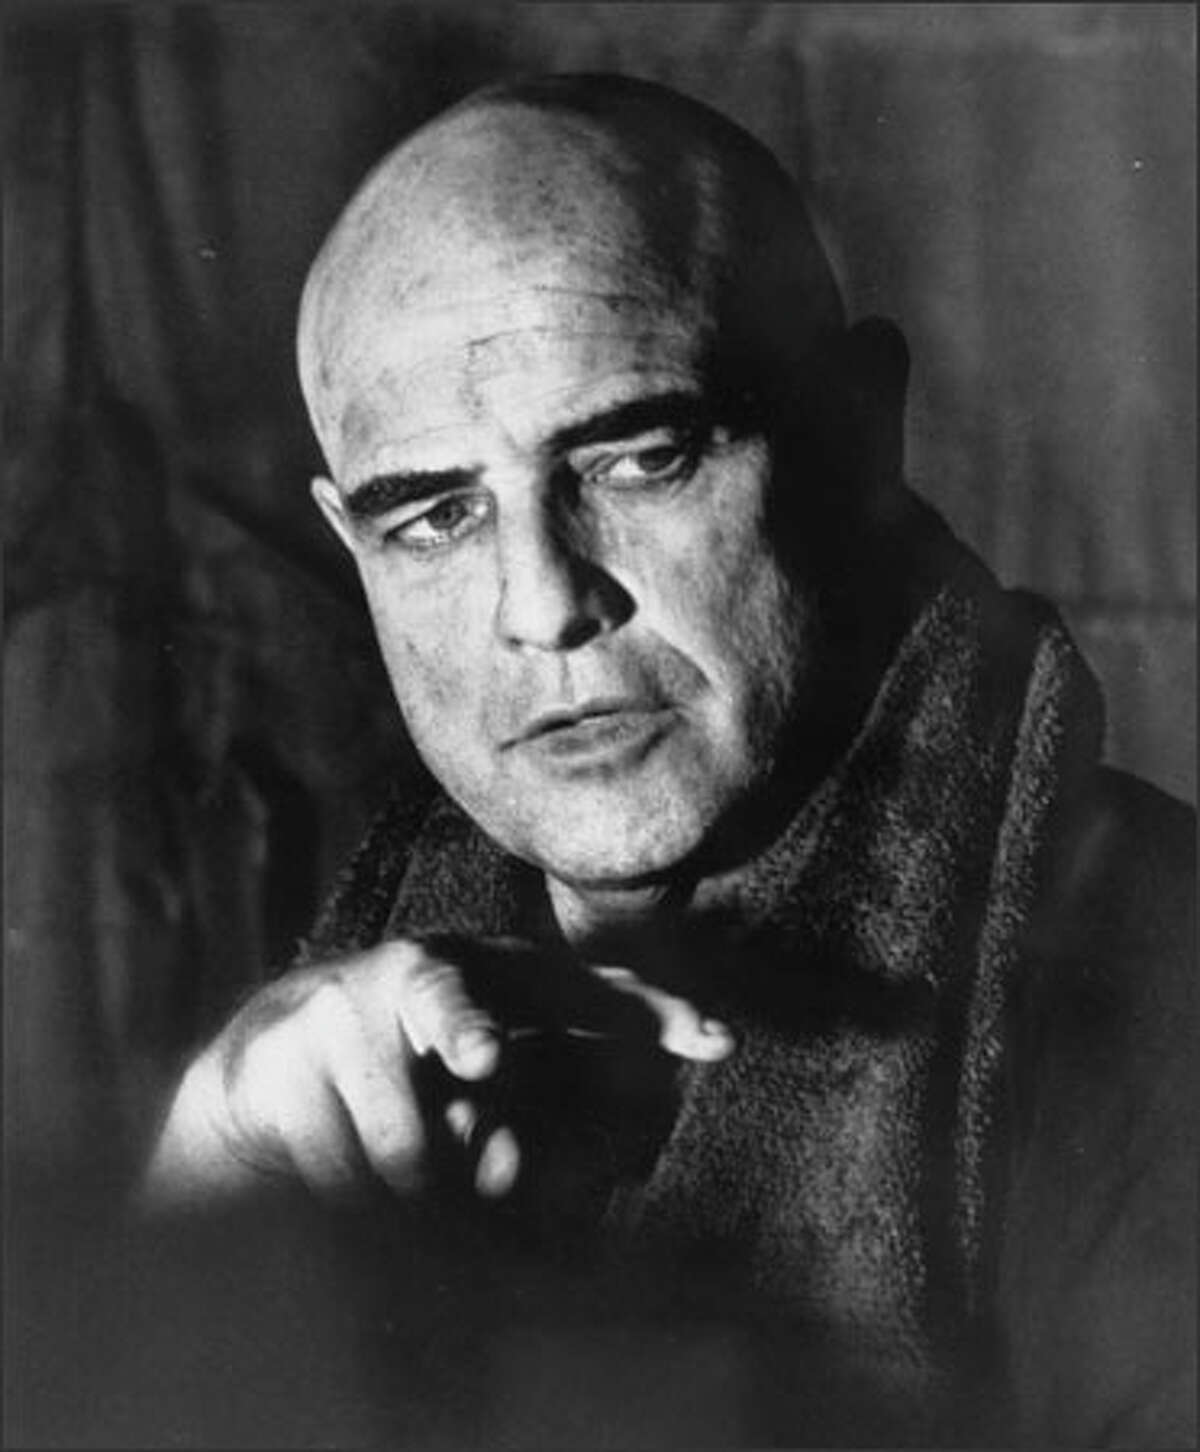 Marlon Brando brought his powerful brand of Method acting to the role of the seemingly mad Col. Walter E. Kurtz in